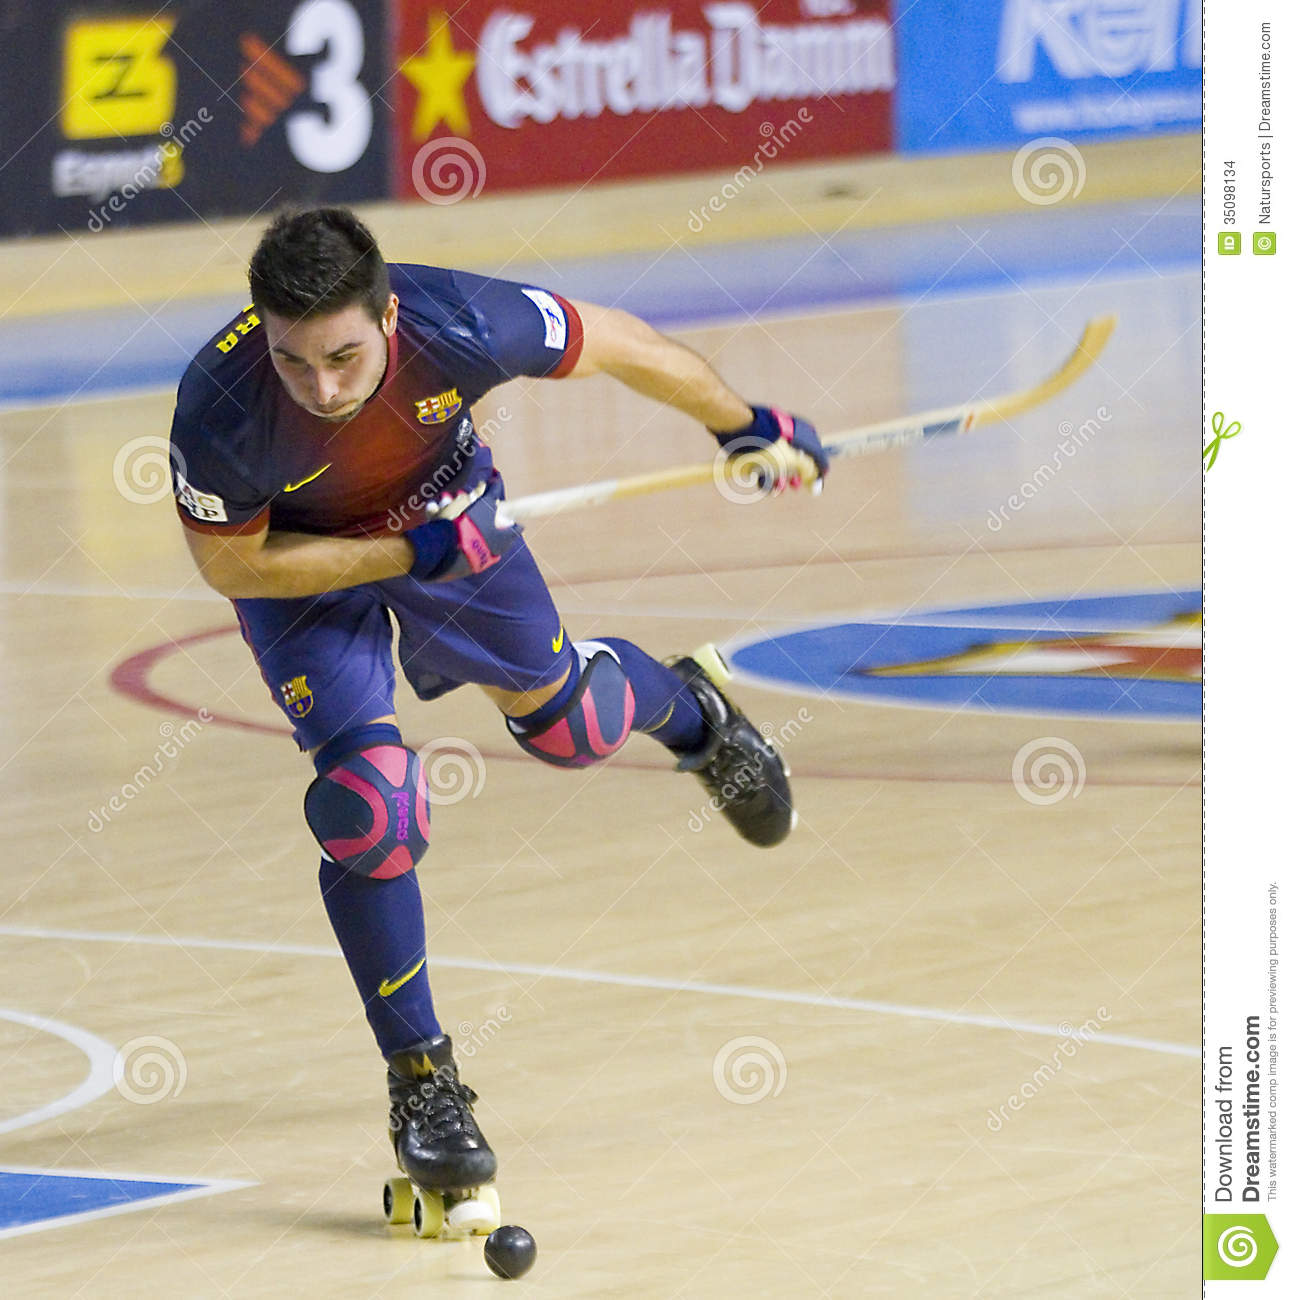 Roller hockey match editorial stock image image 35098134 for Puerta 0 palau blaugrana